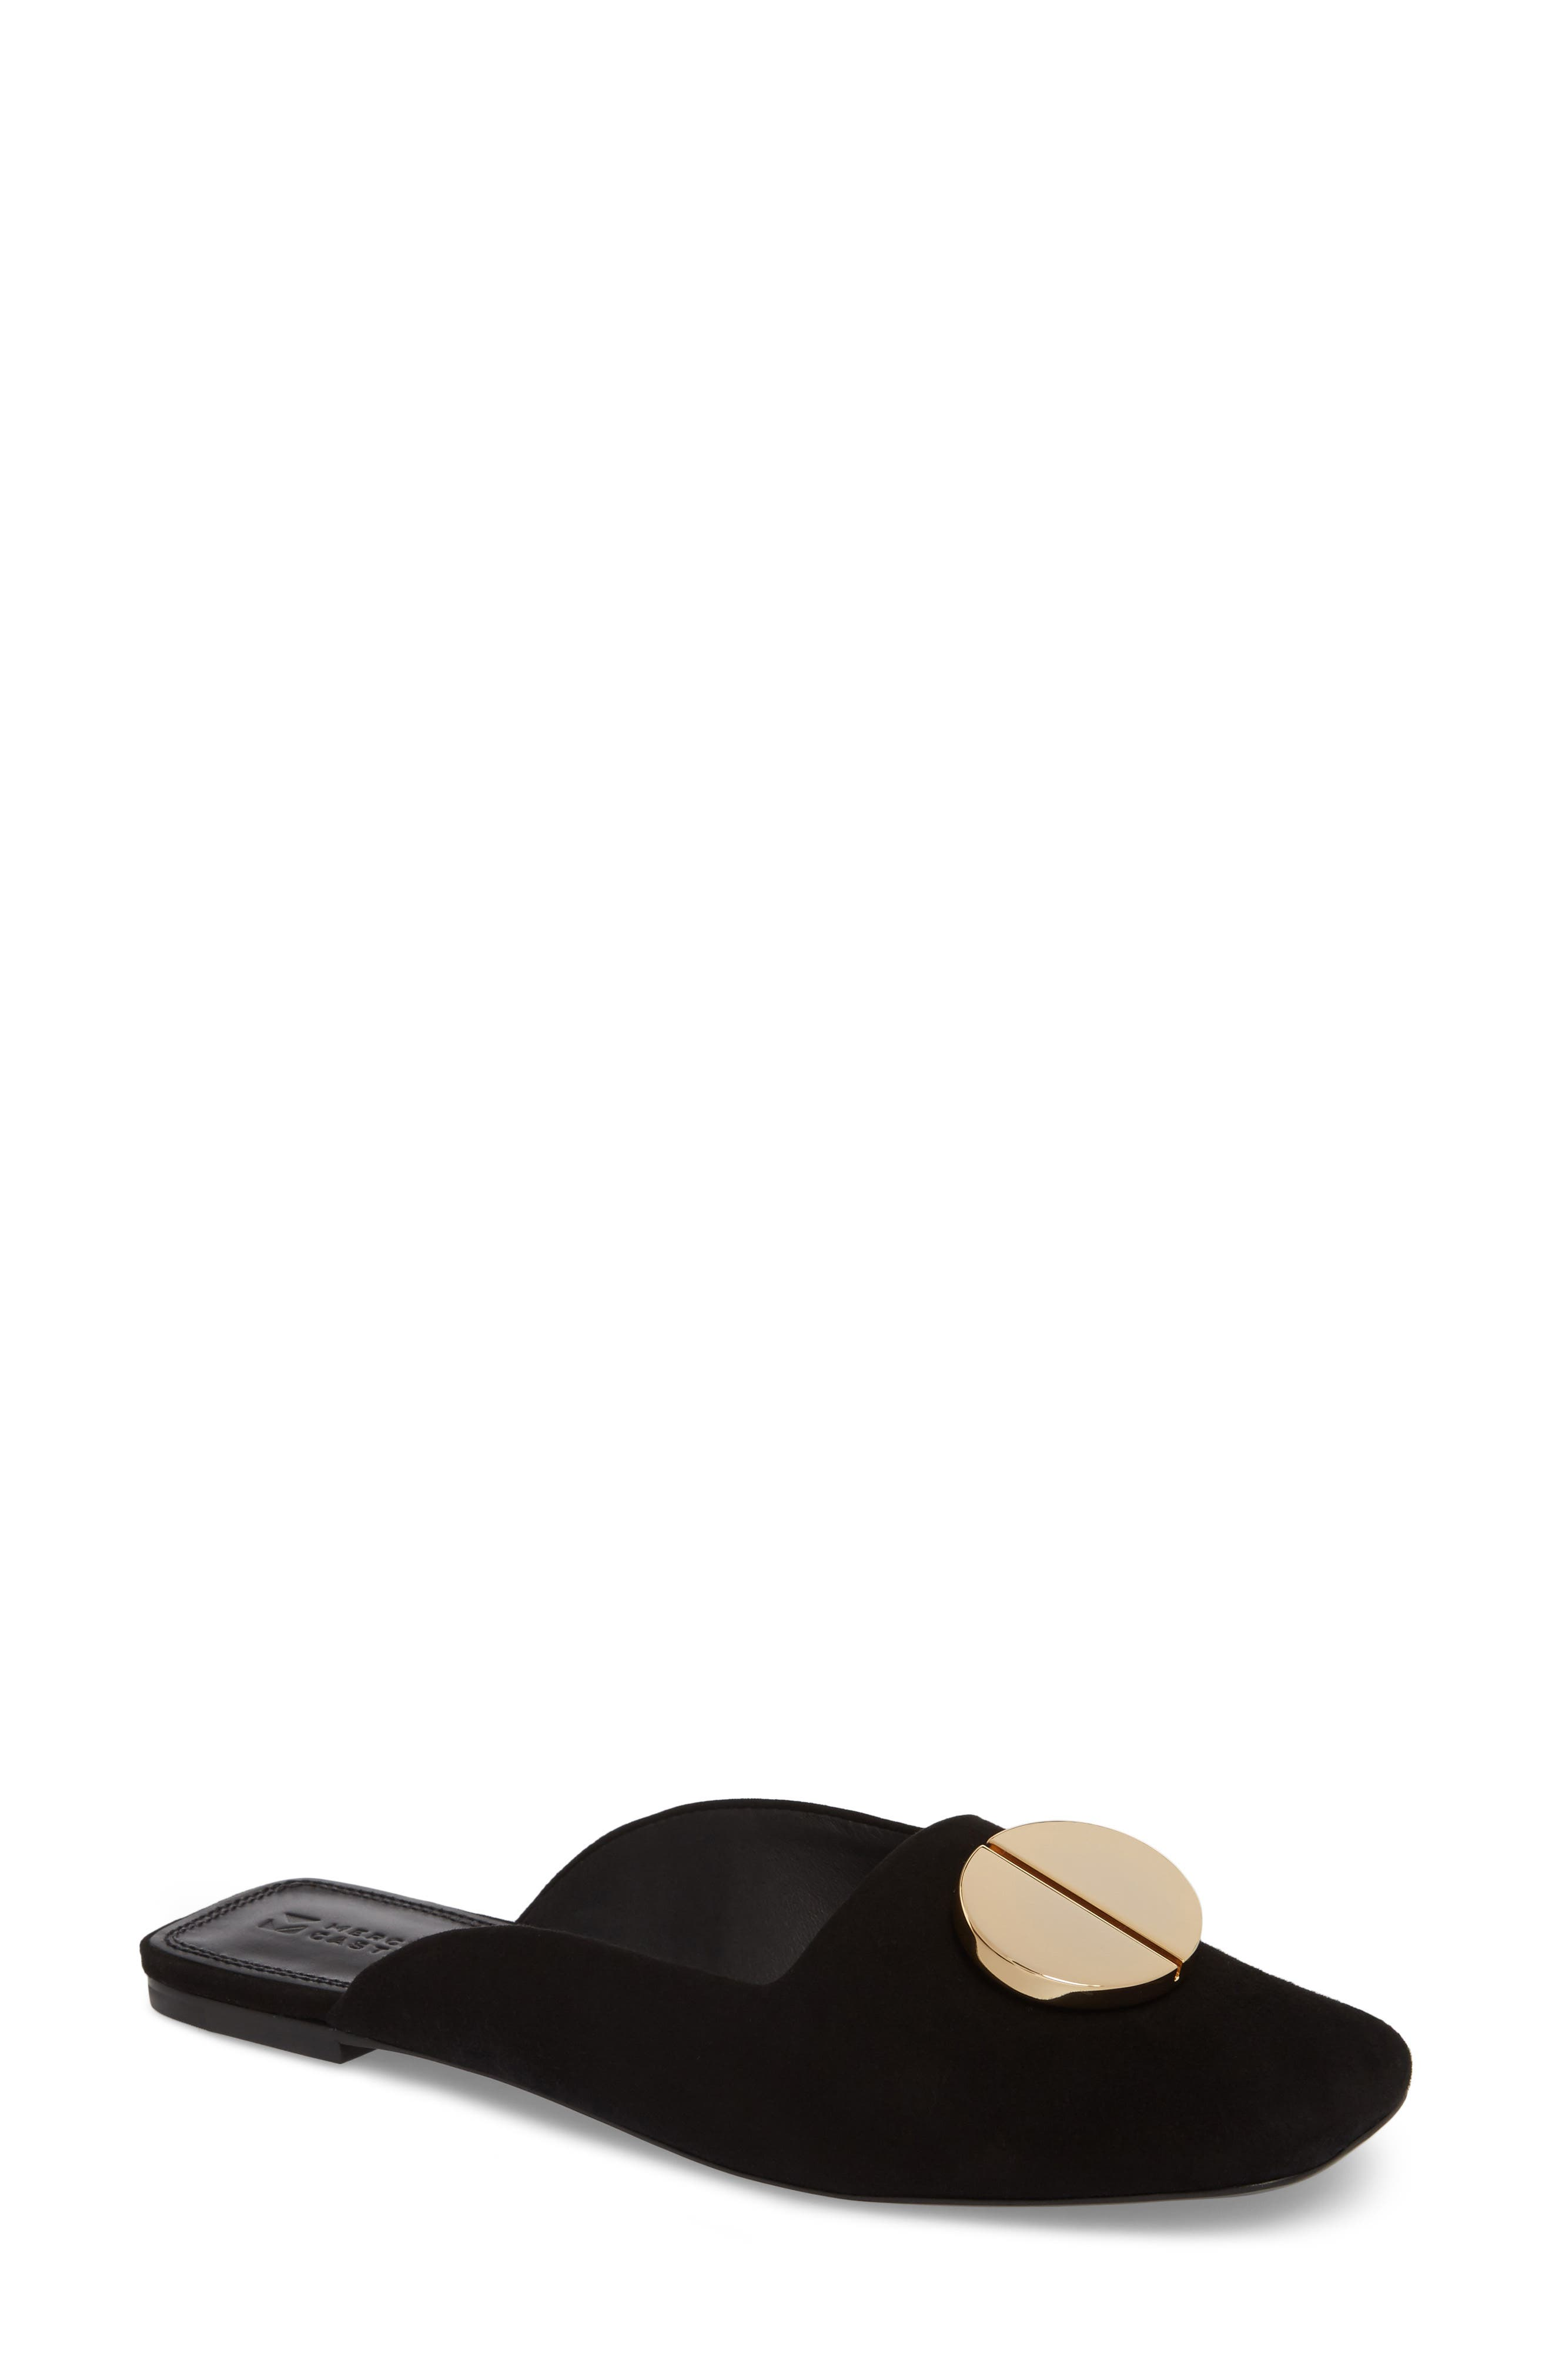 Alternate Image 1 Selected - Mercedes Castillo Devon Loafer Mule (Women)